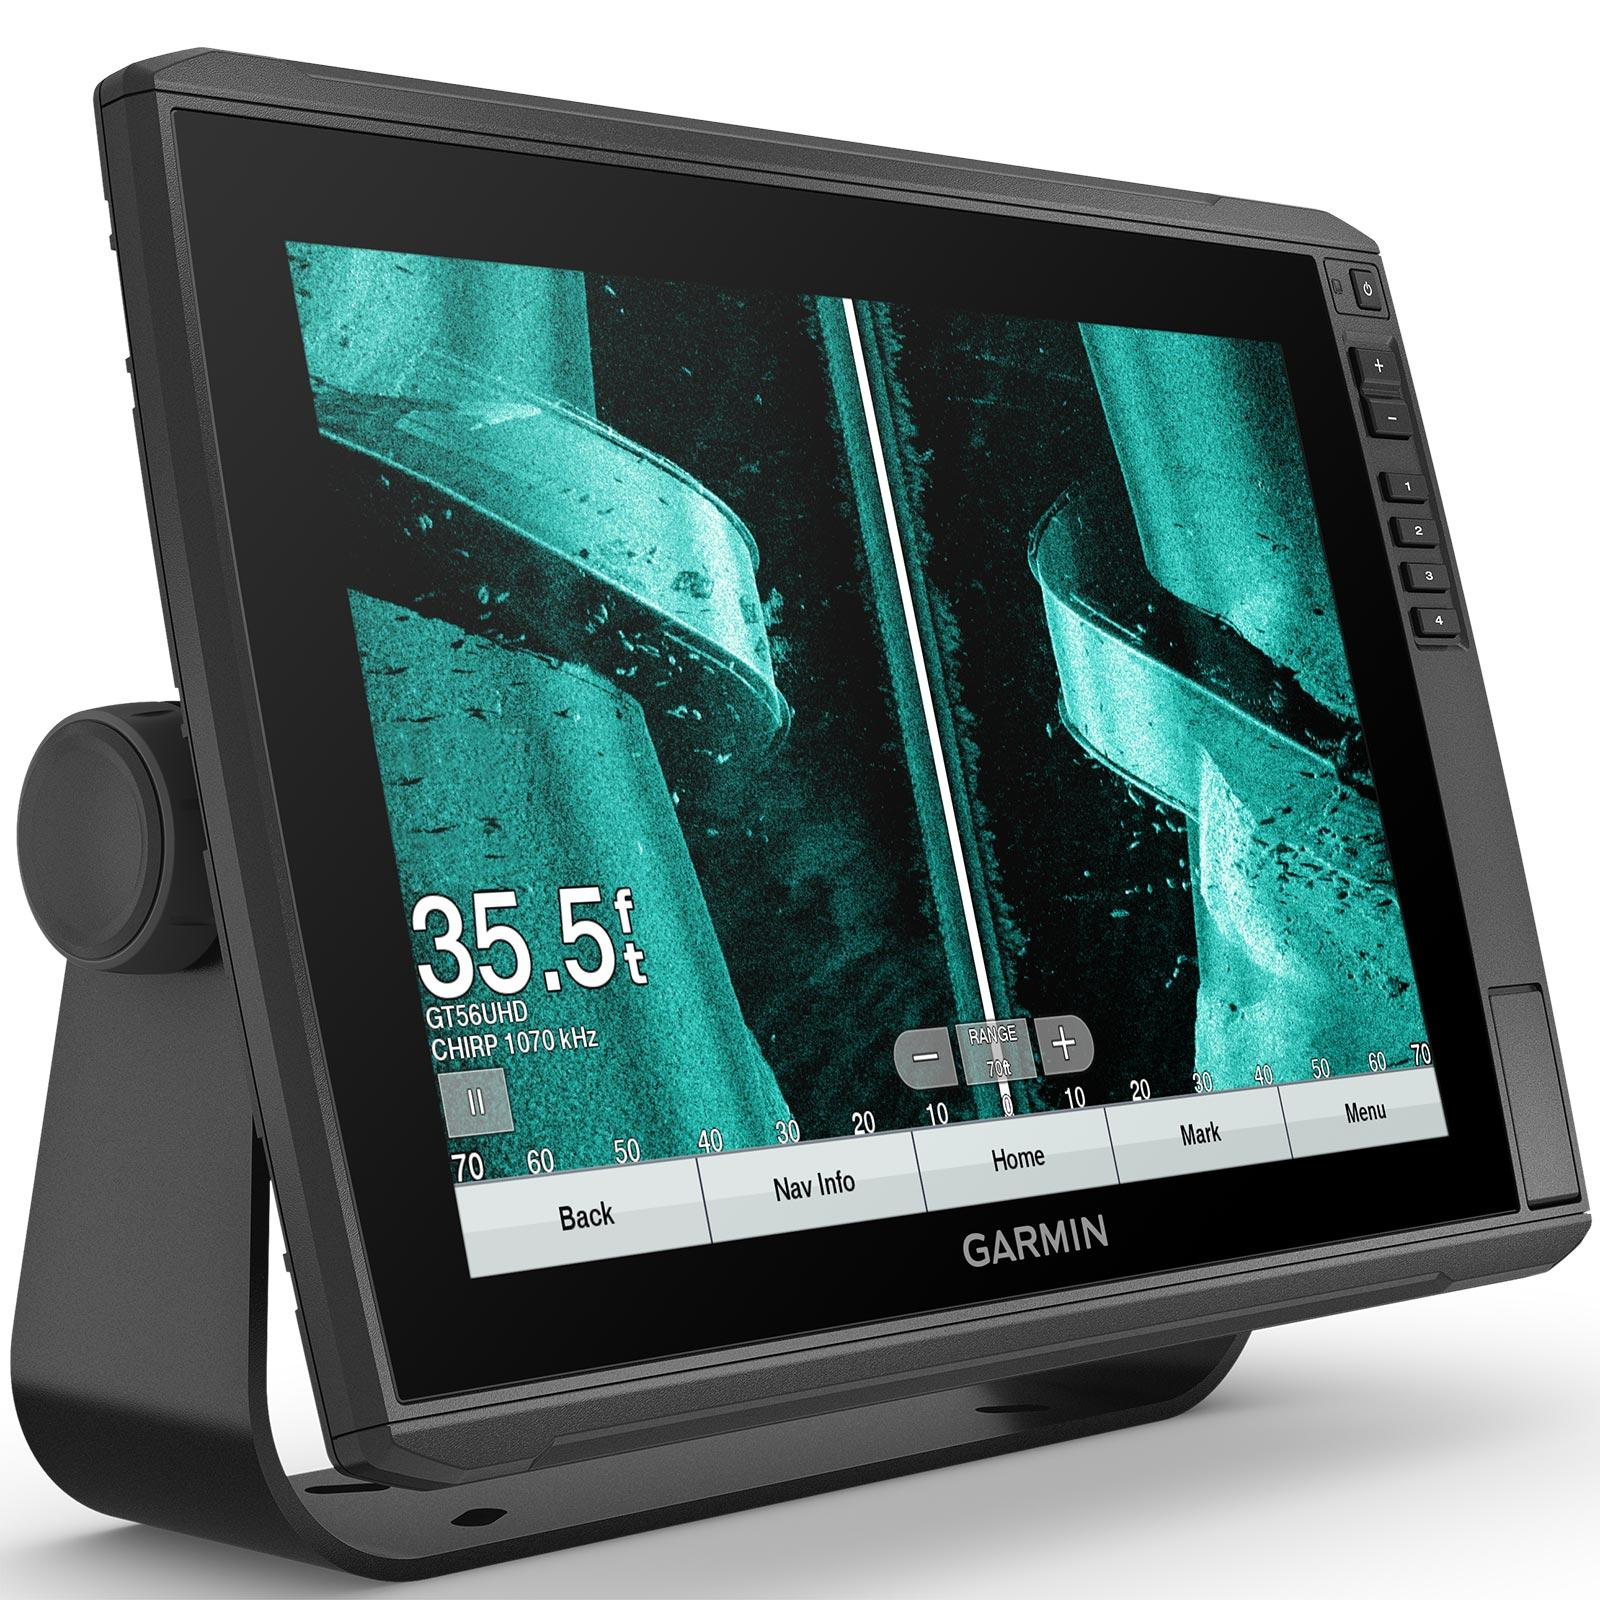 Garmin ECHOMAP Ultra 126sv with GT56UHD-TM Transducer Split Screen